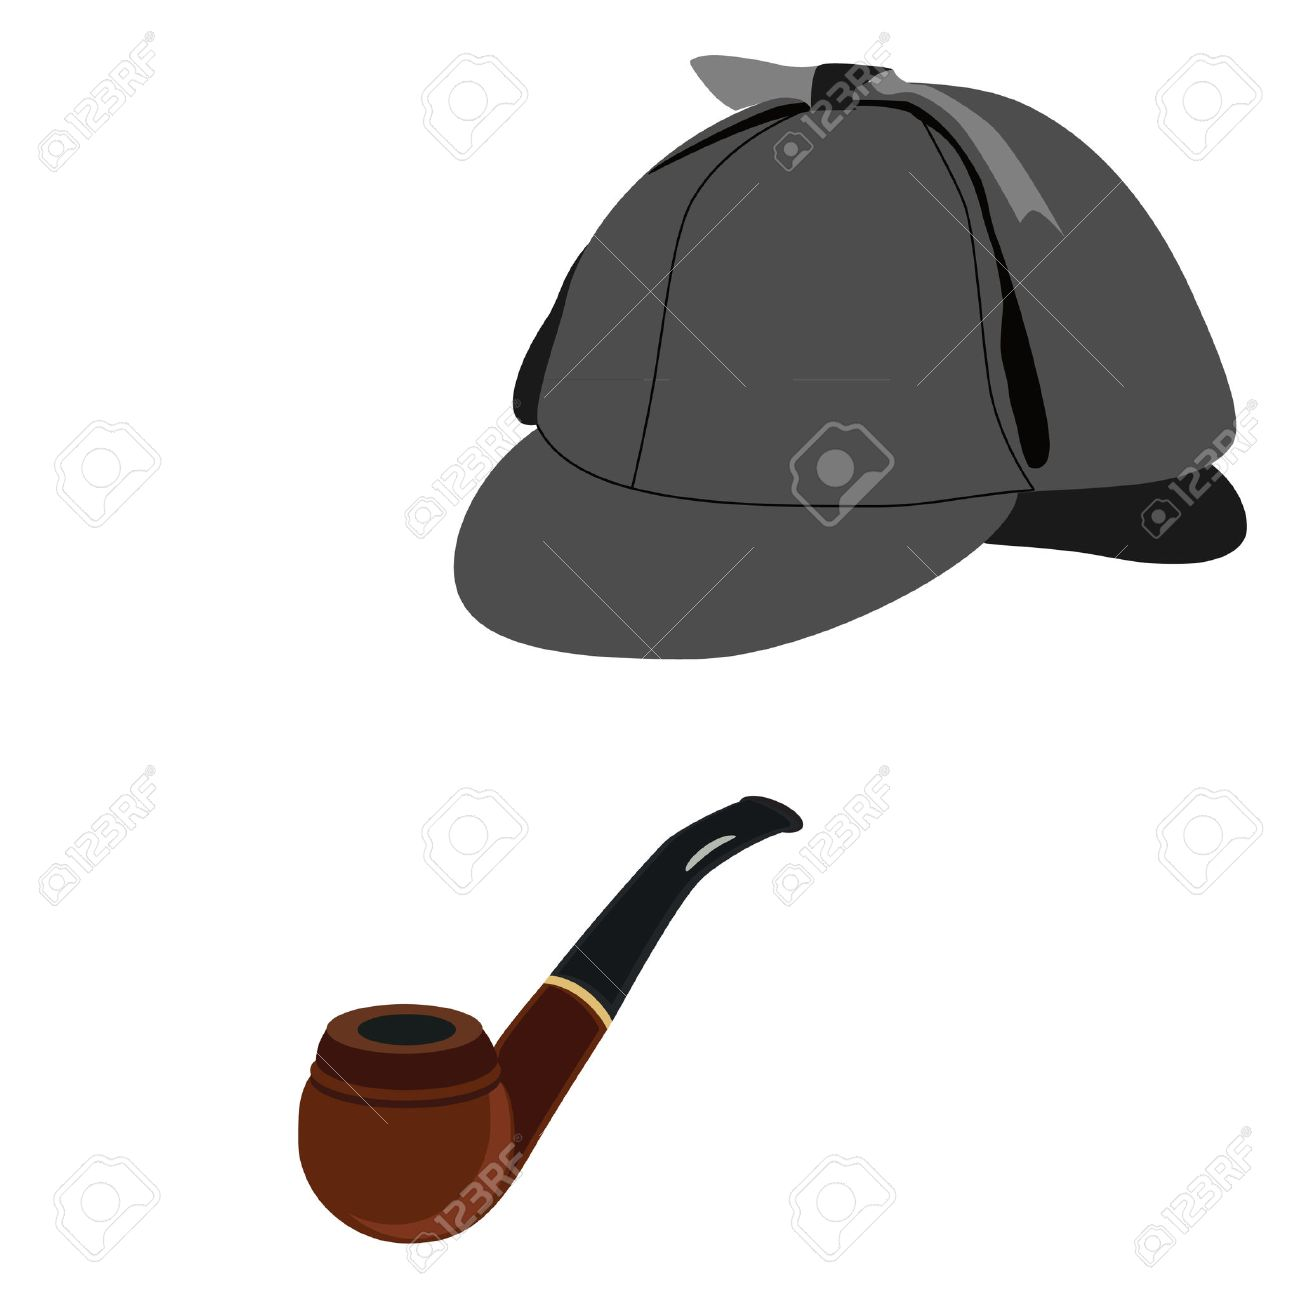 ff178551b Detective sherlock holmes hat and smoking pipe vector isolated,..